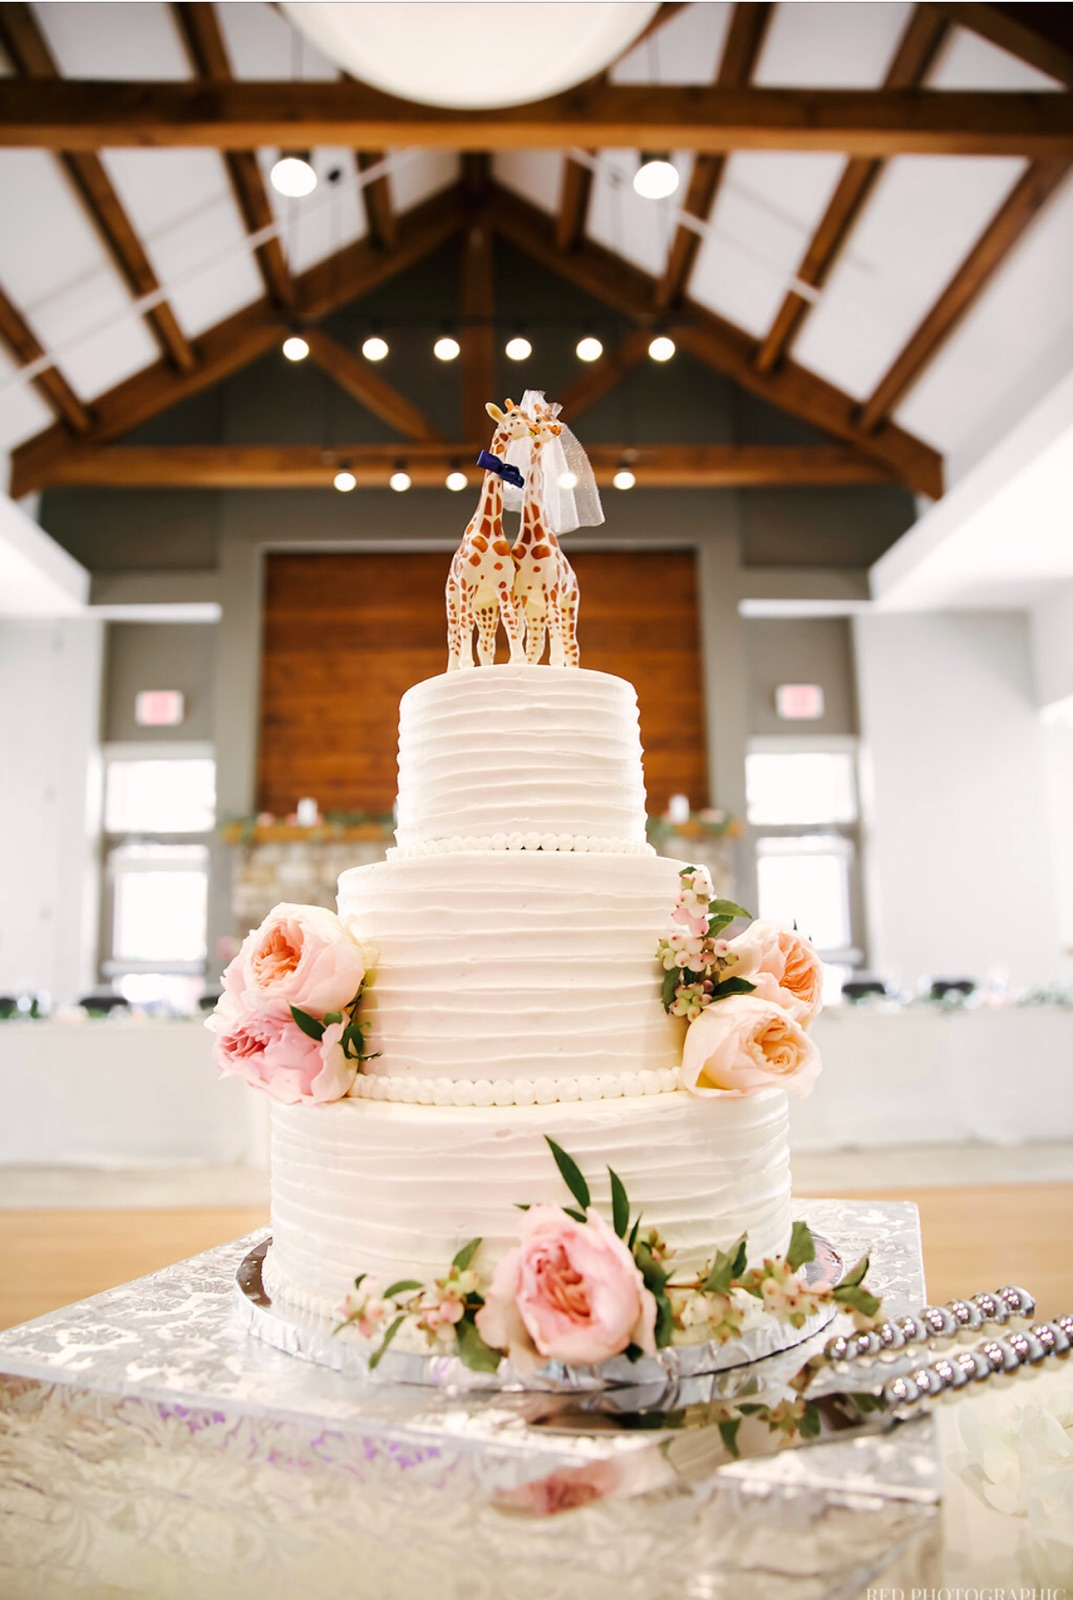 Photo of a wedding cake